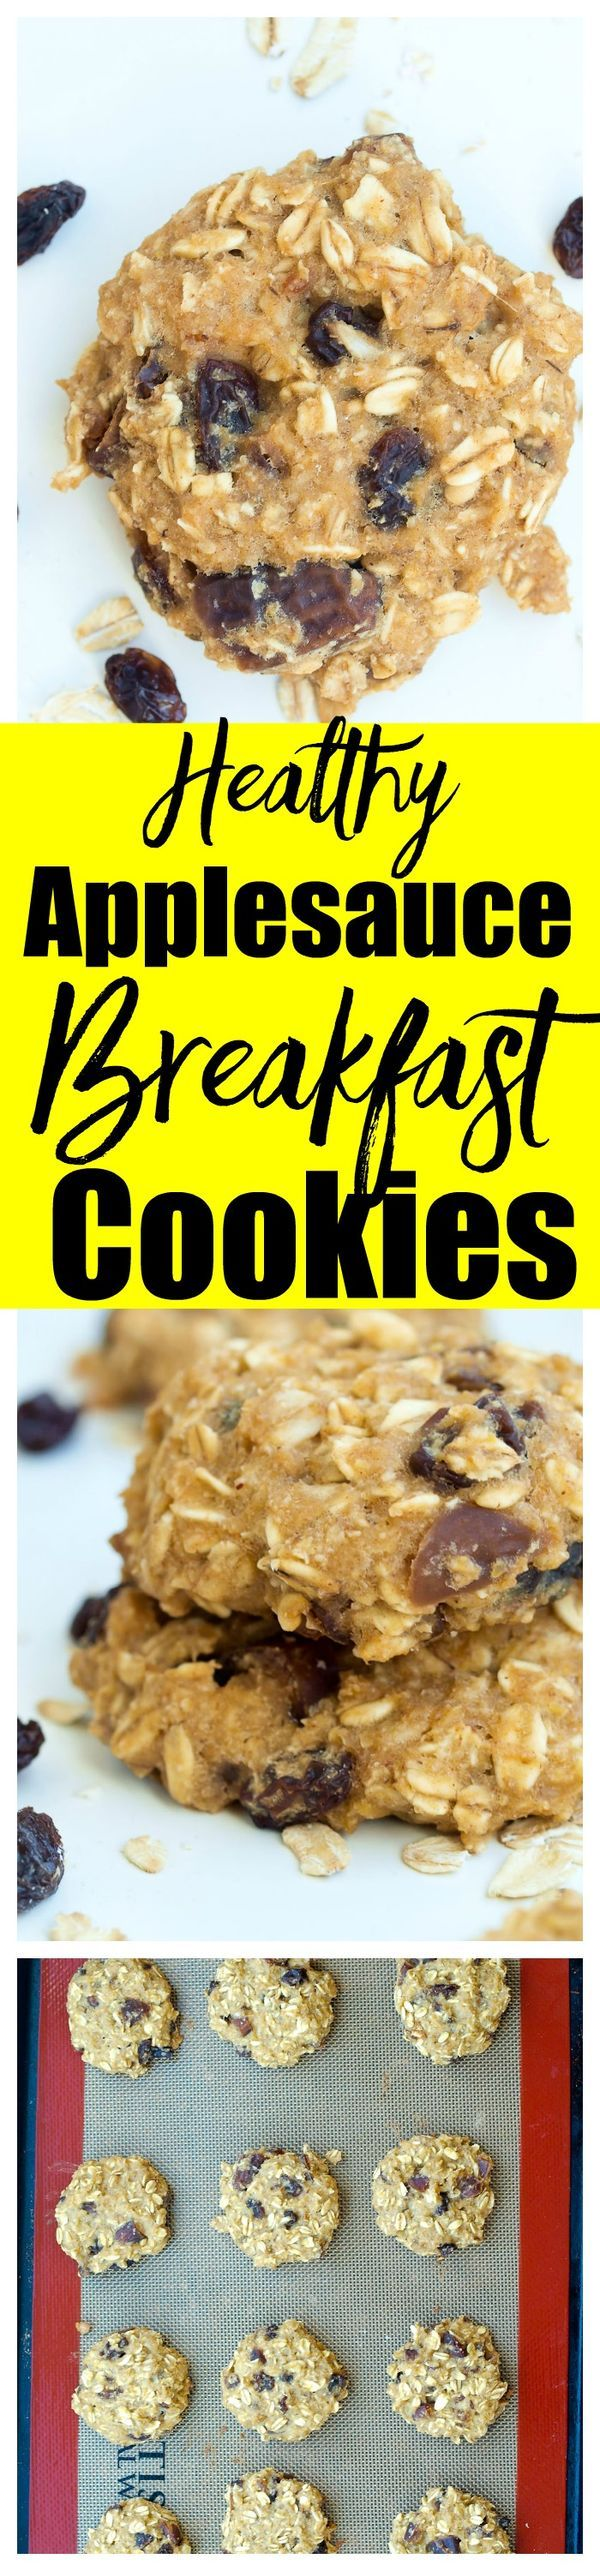 Looking for a simple and healthy breakfast cookie recipe? Then you'll want this Applesauce Breakfast Cookie recipe that are gluten-free and vegan! These are perfect for breakfast, a snack, or to satisfy your sweet tooth with no added sugar!